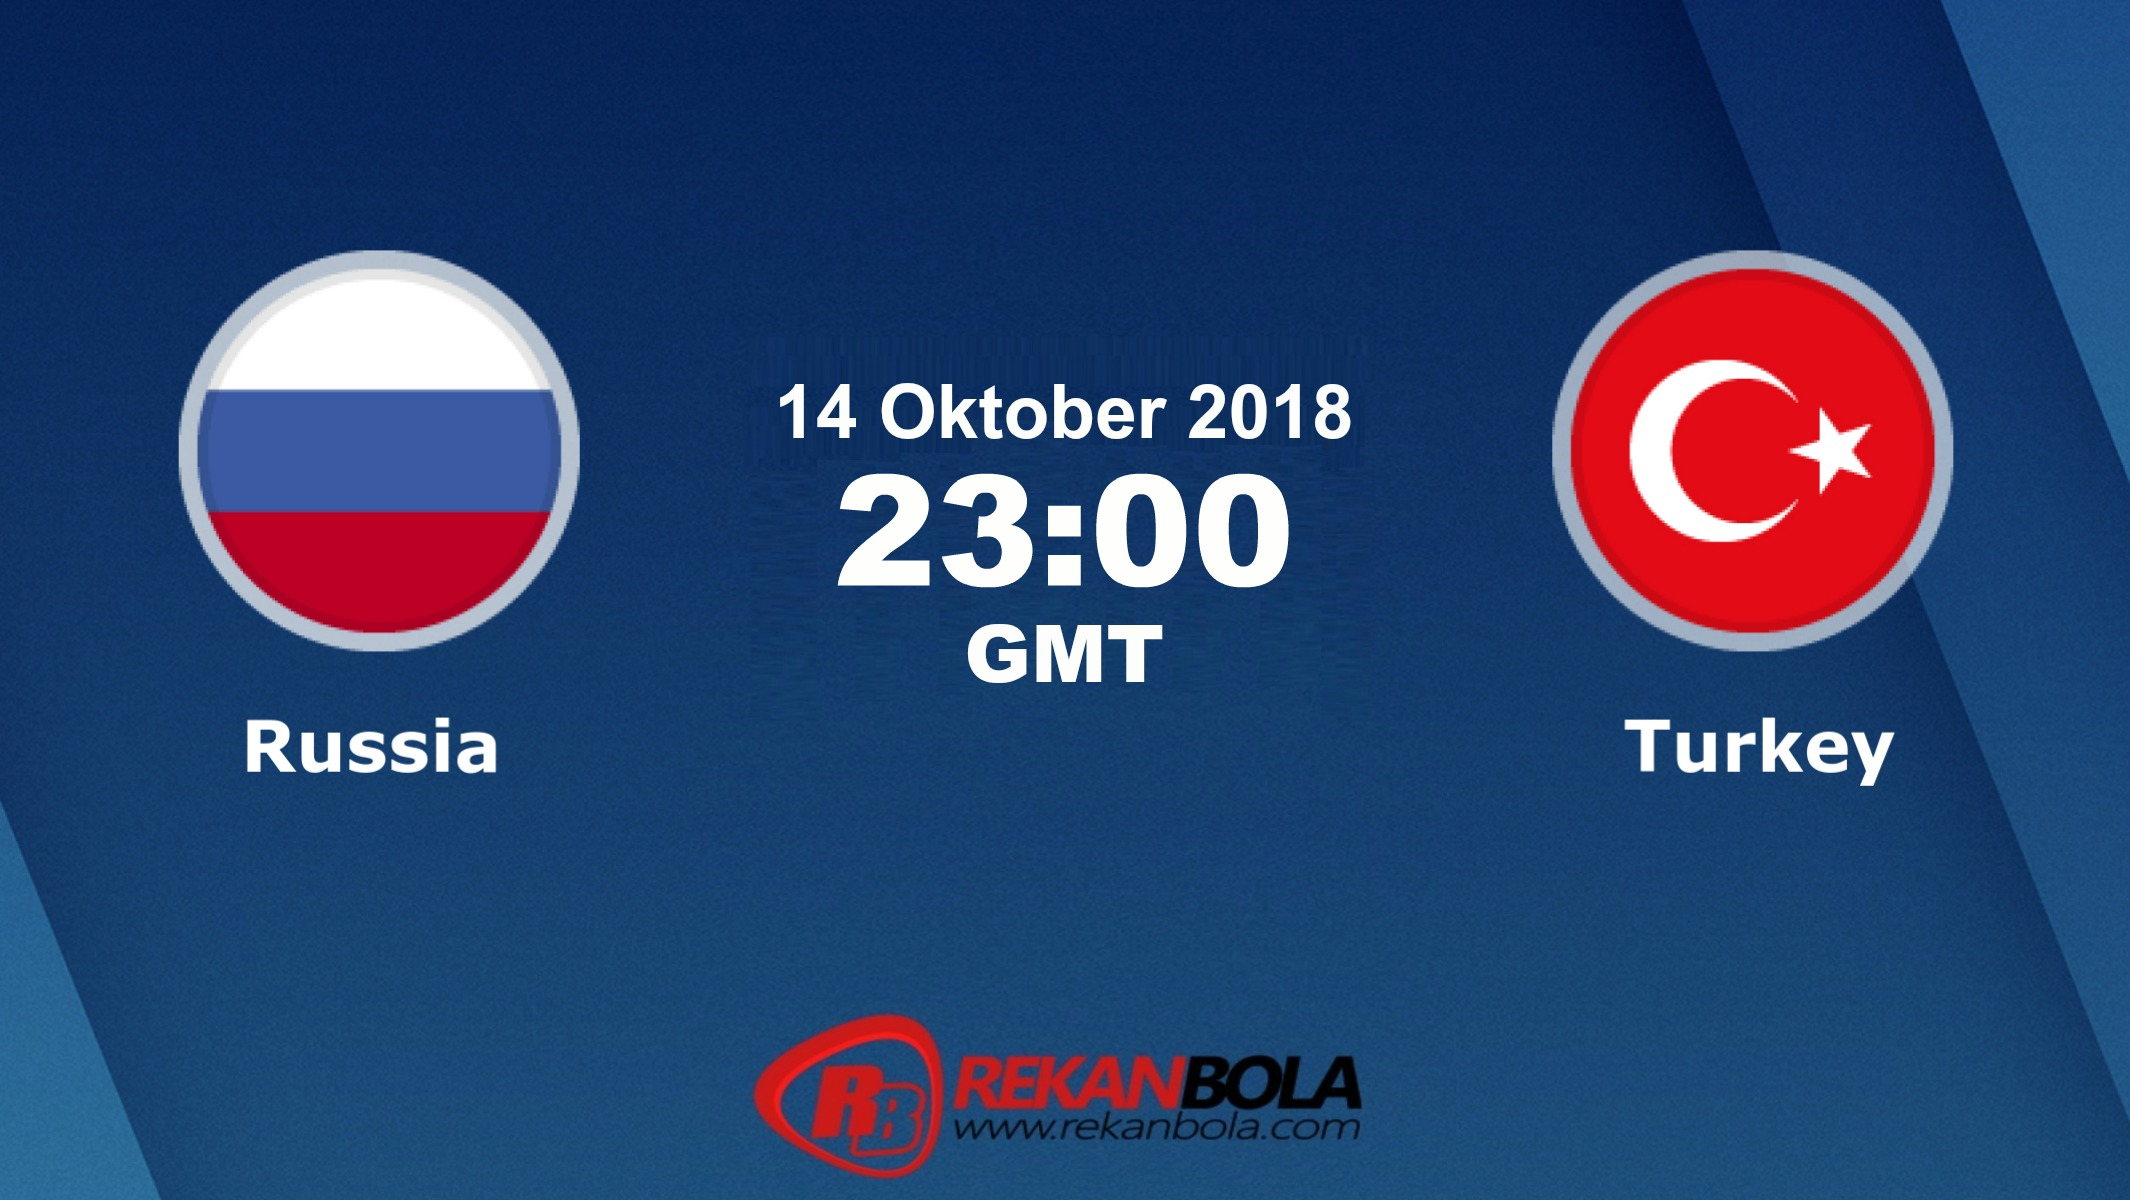 Nonton Siaran Live Streaming Russia Vs Turki 14 Oktober 2018